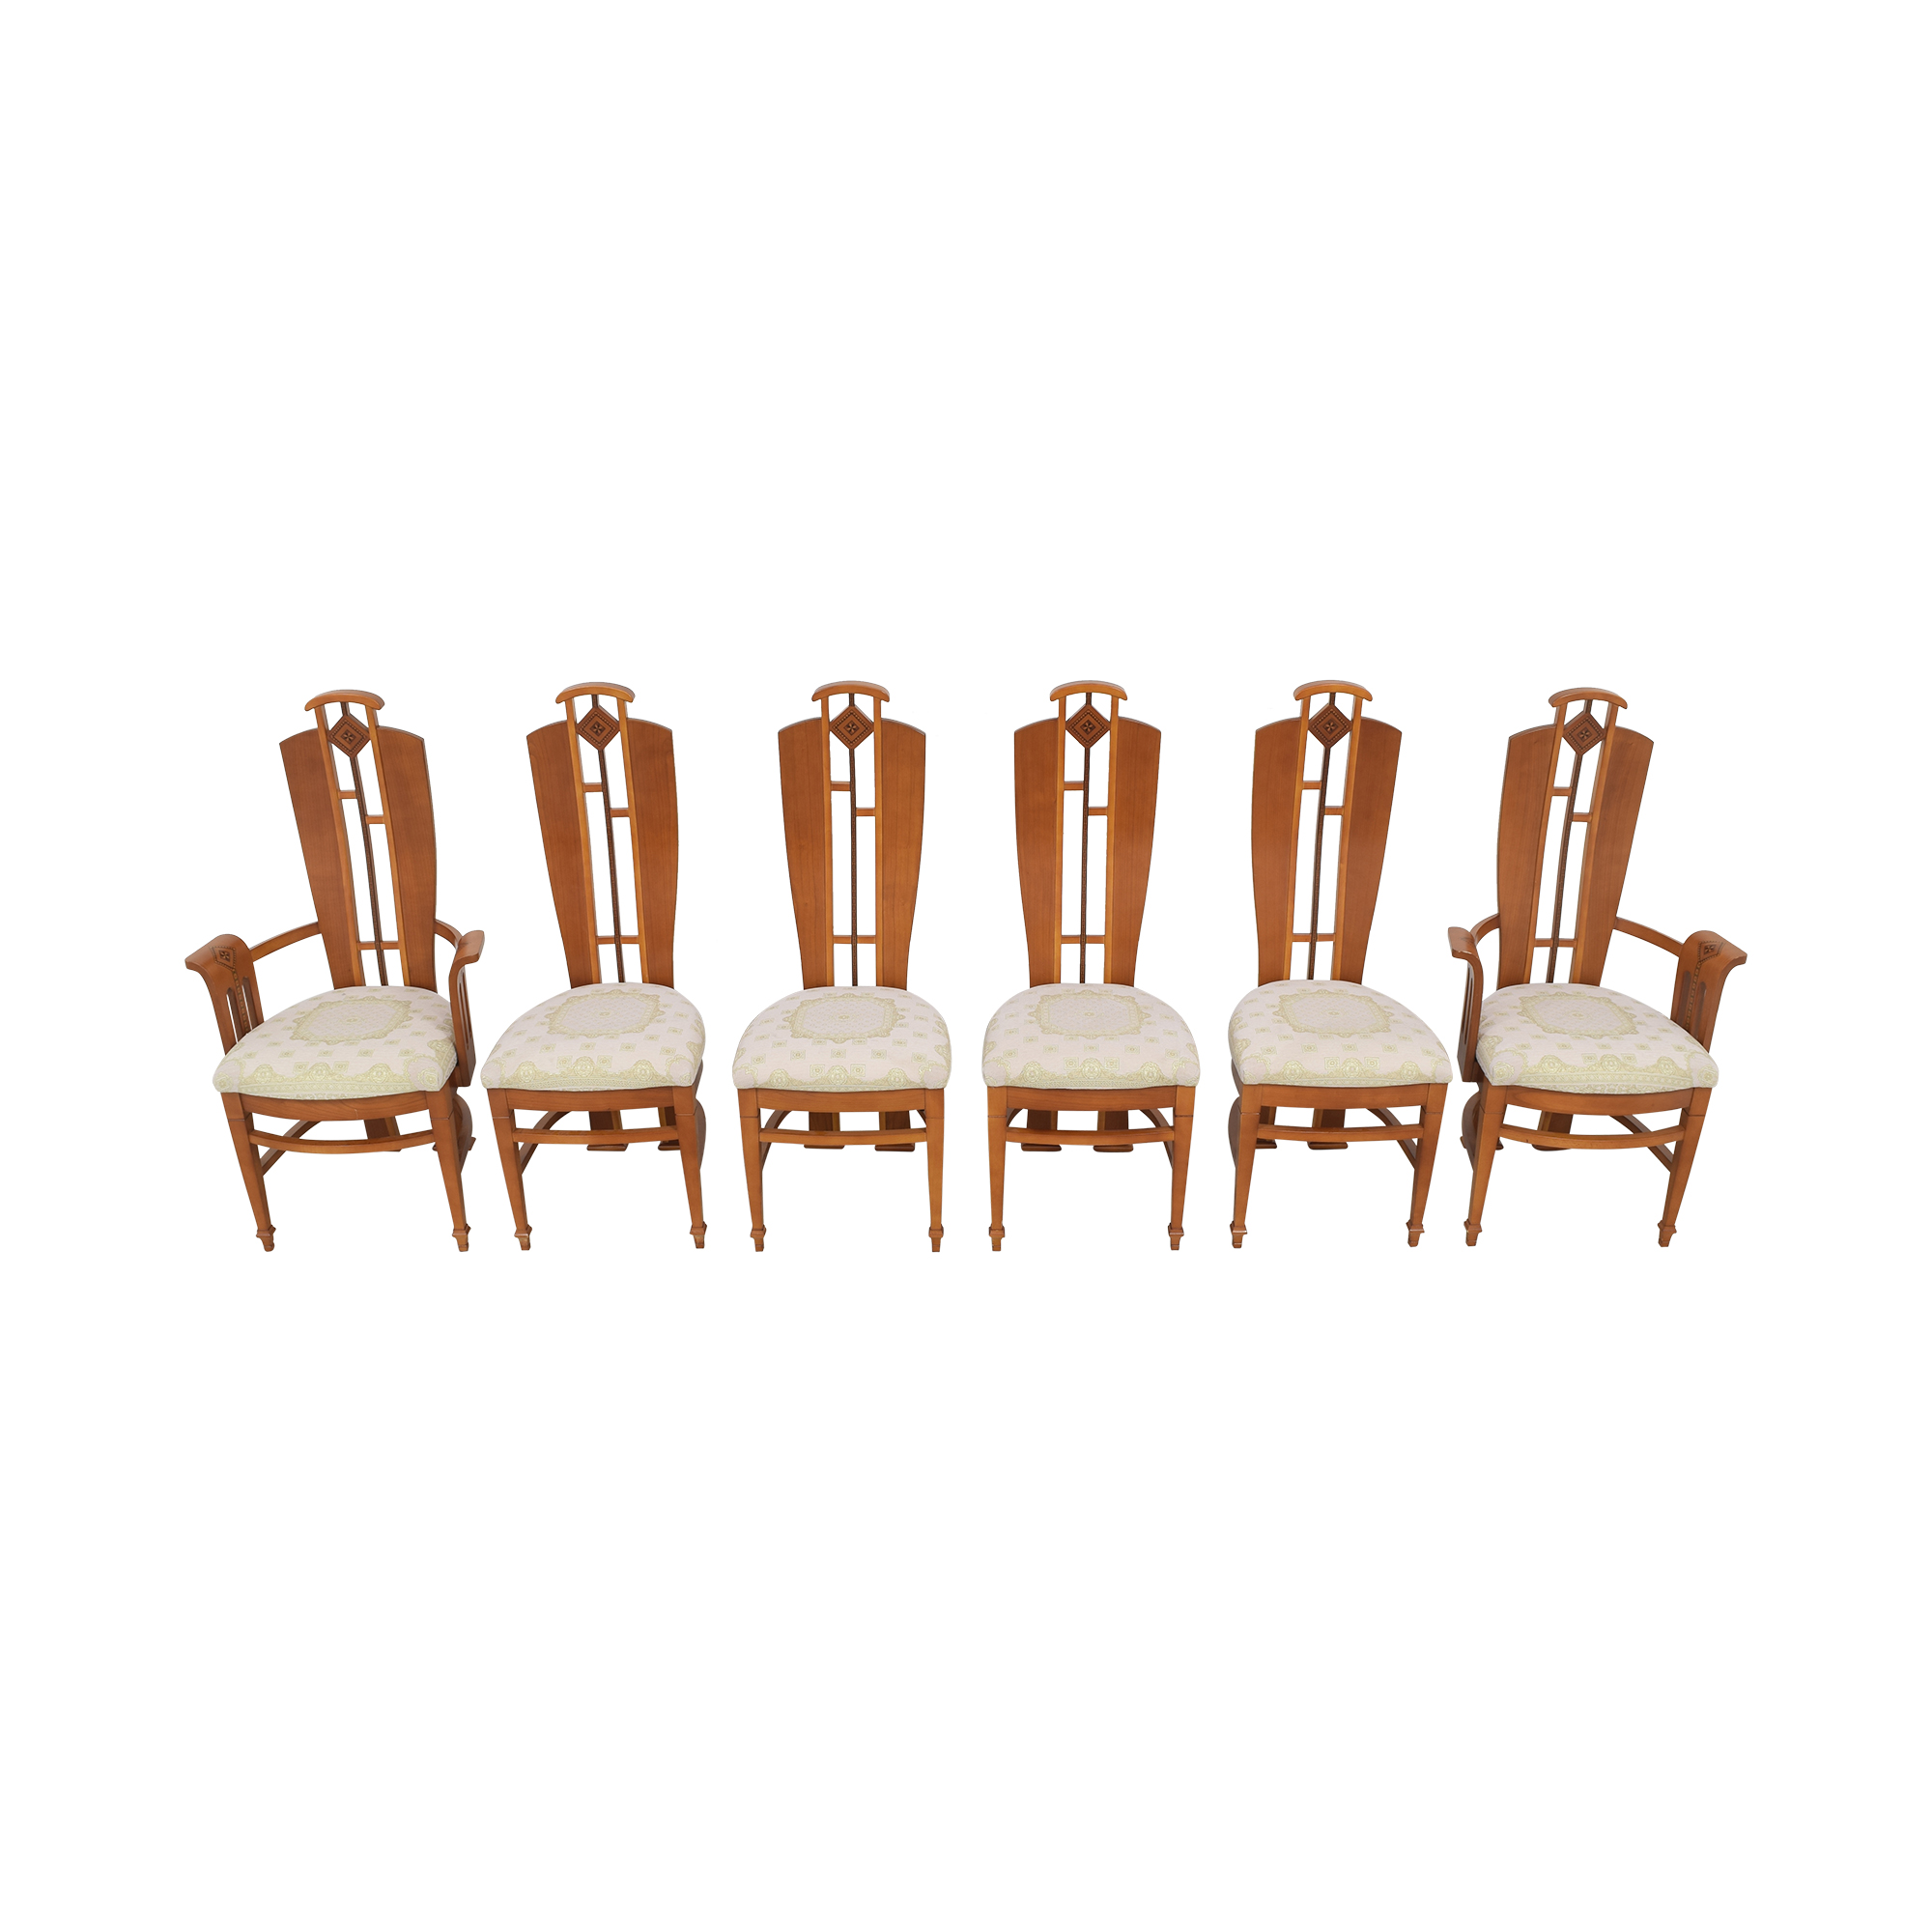 World Of Decor Dining Chairs second hand